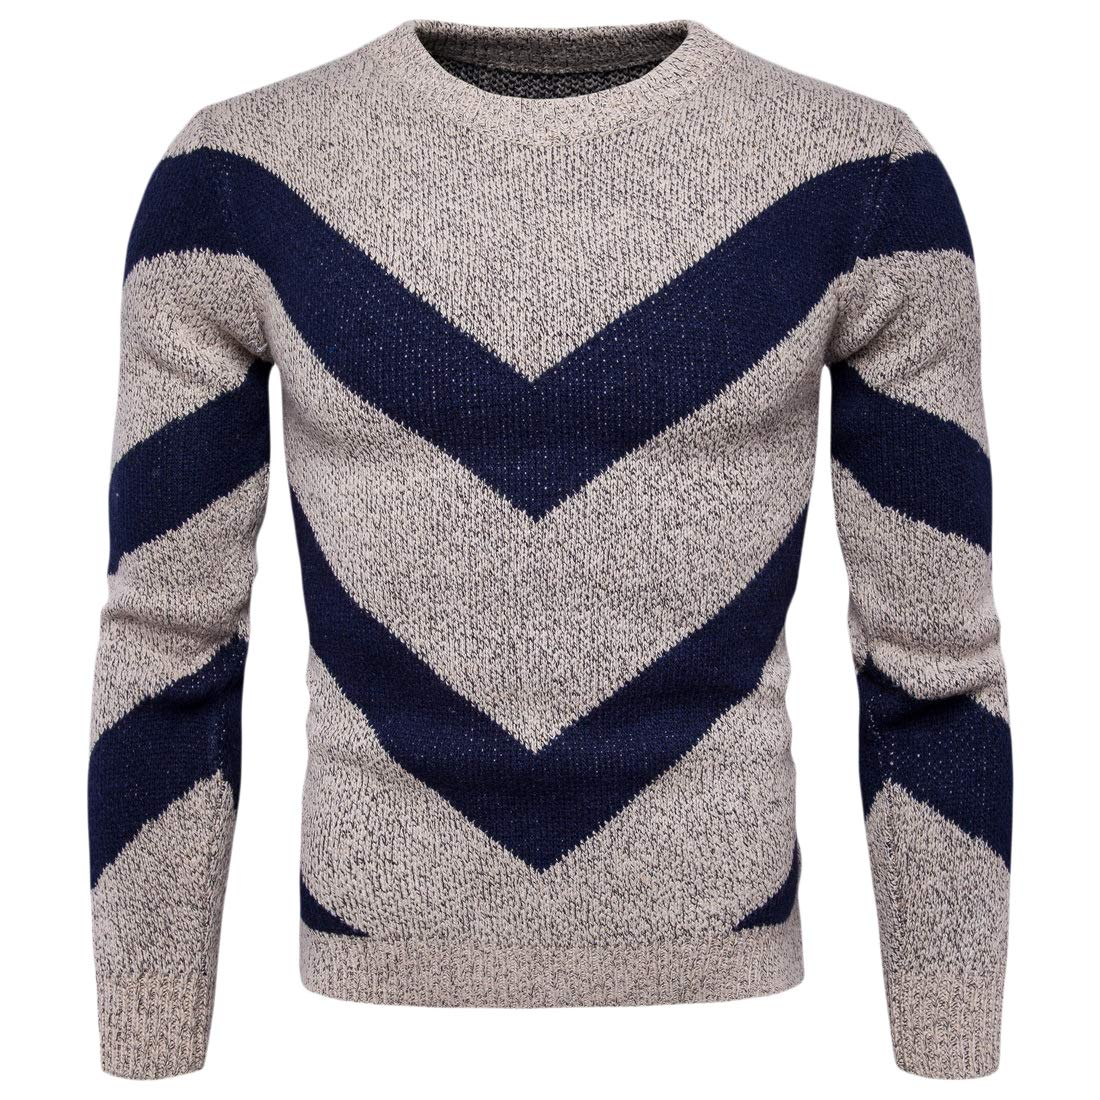 Zimaes-Men Casual Loose British Style Knit Crew-Neck Pullover Sweater